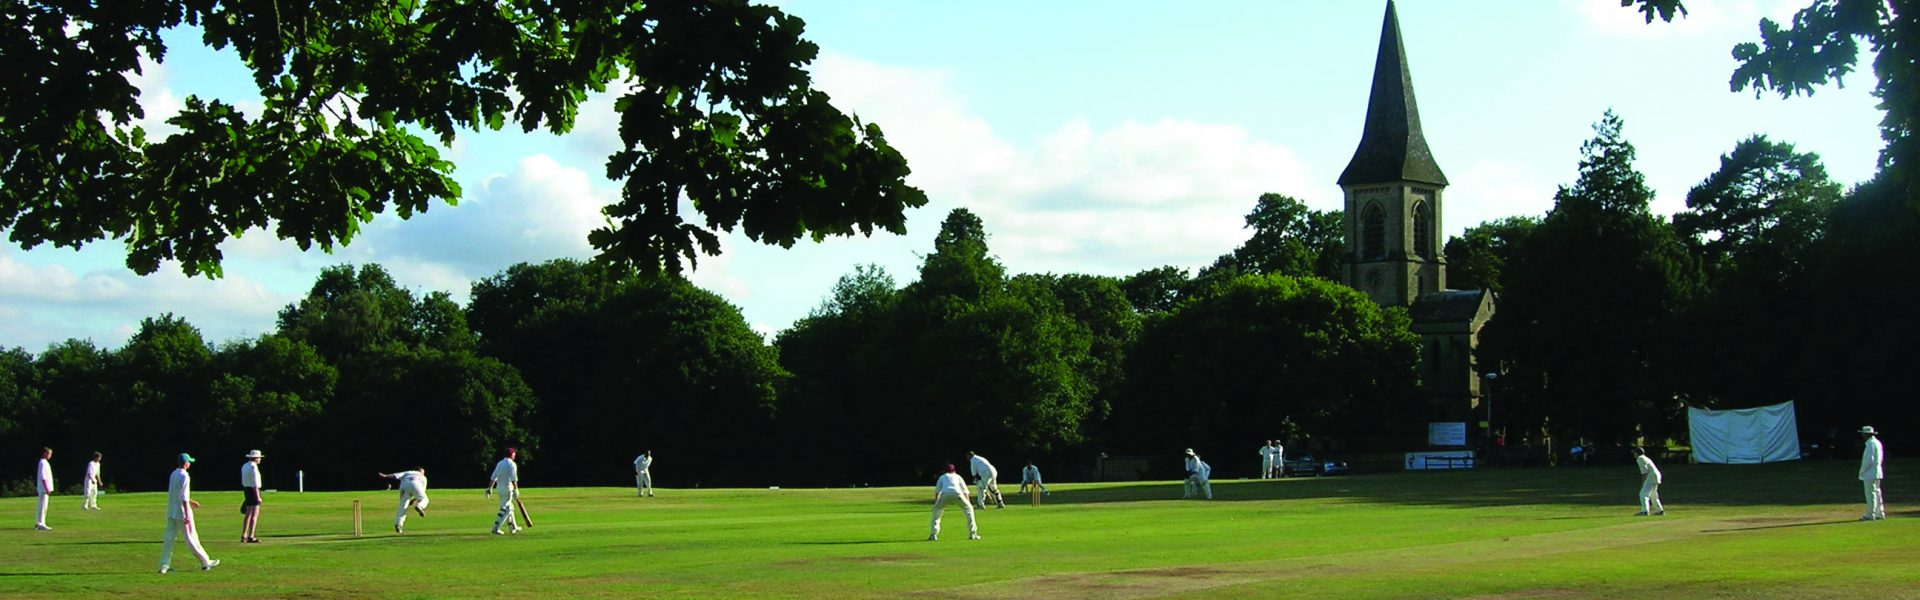 Cricket in front of St Peter's Church